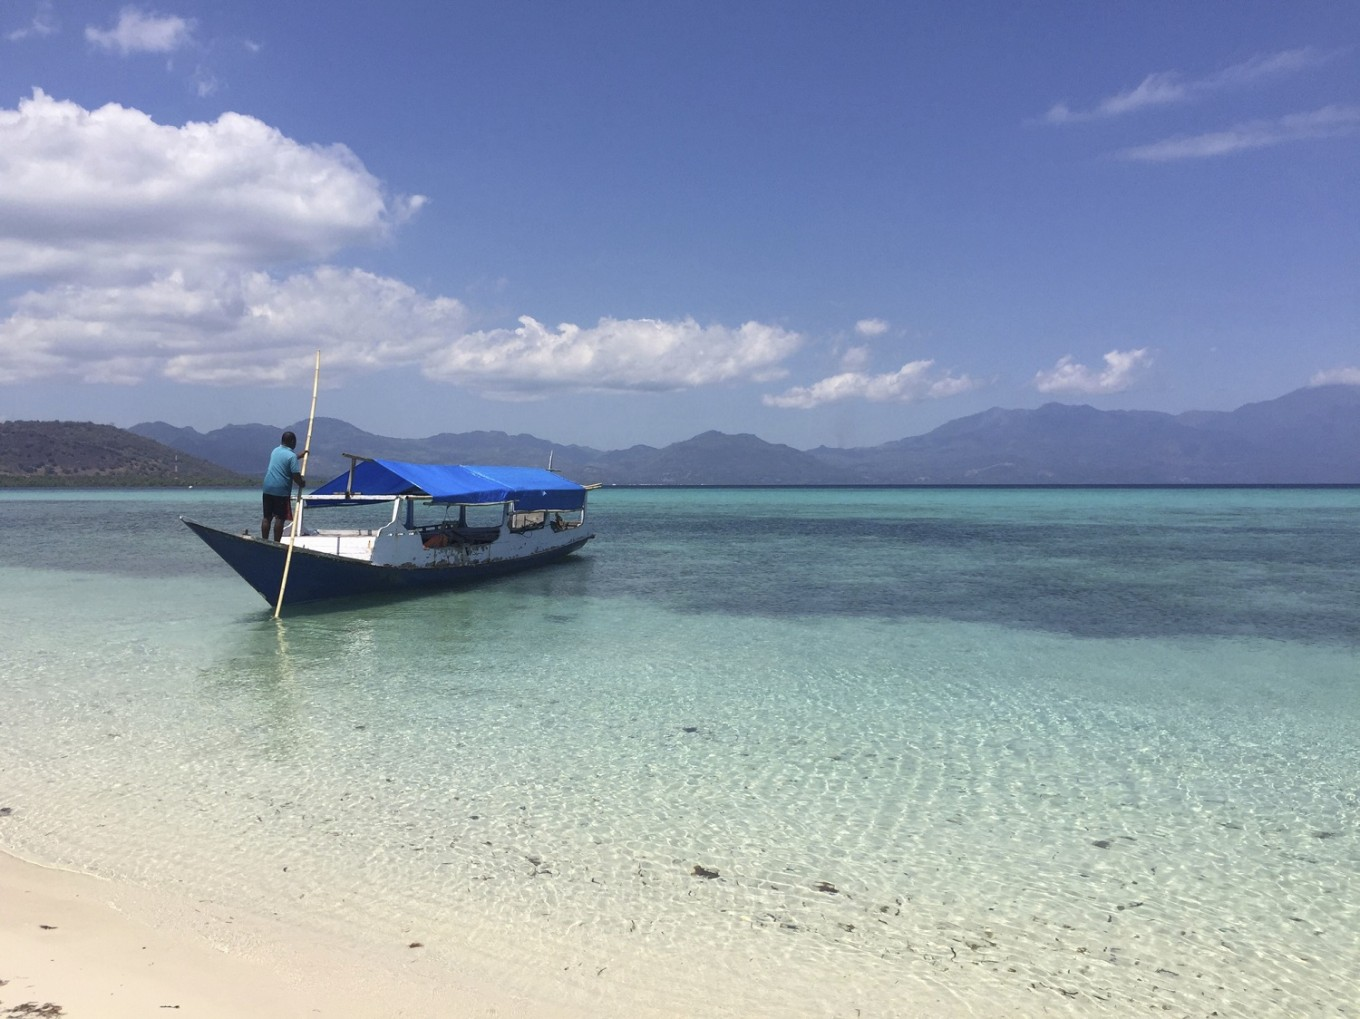 Island-hopping in Indonesia: Visiting a few from thousands